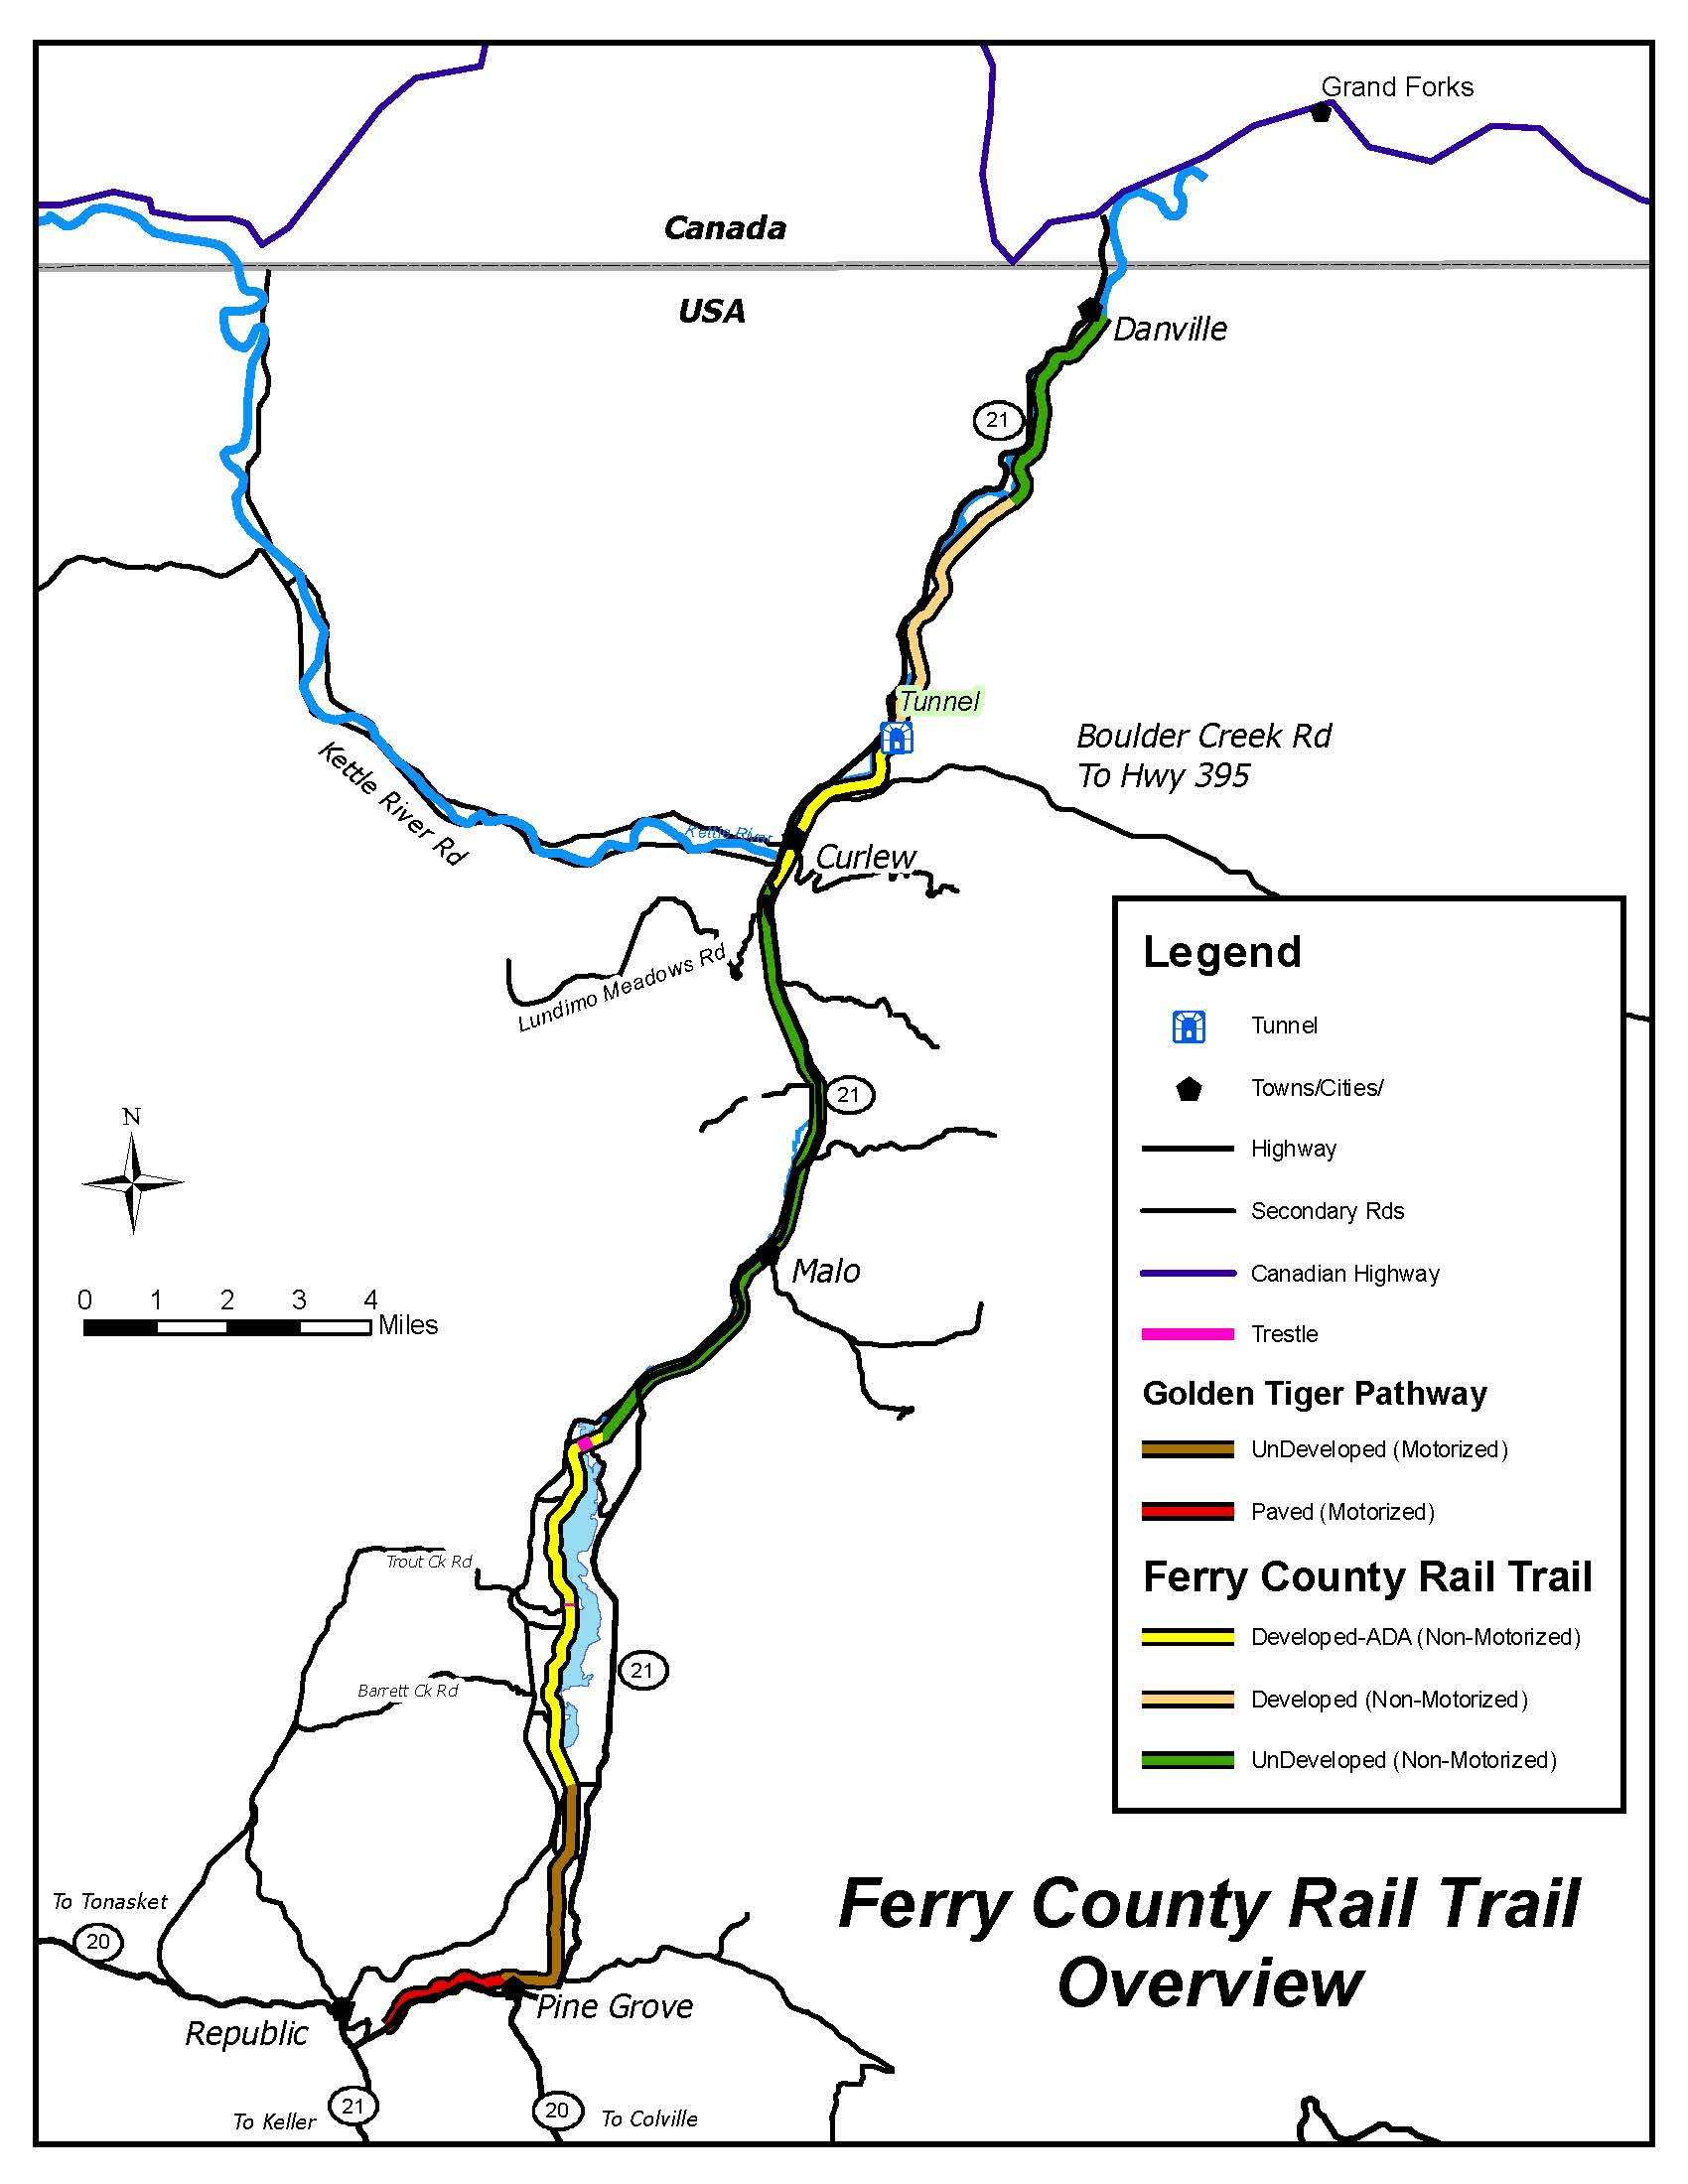 FCRT Map - Republic to Danville